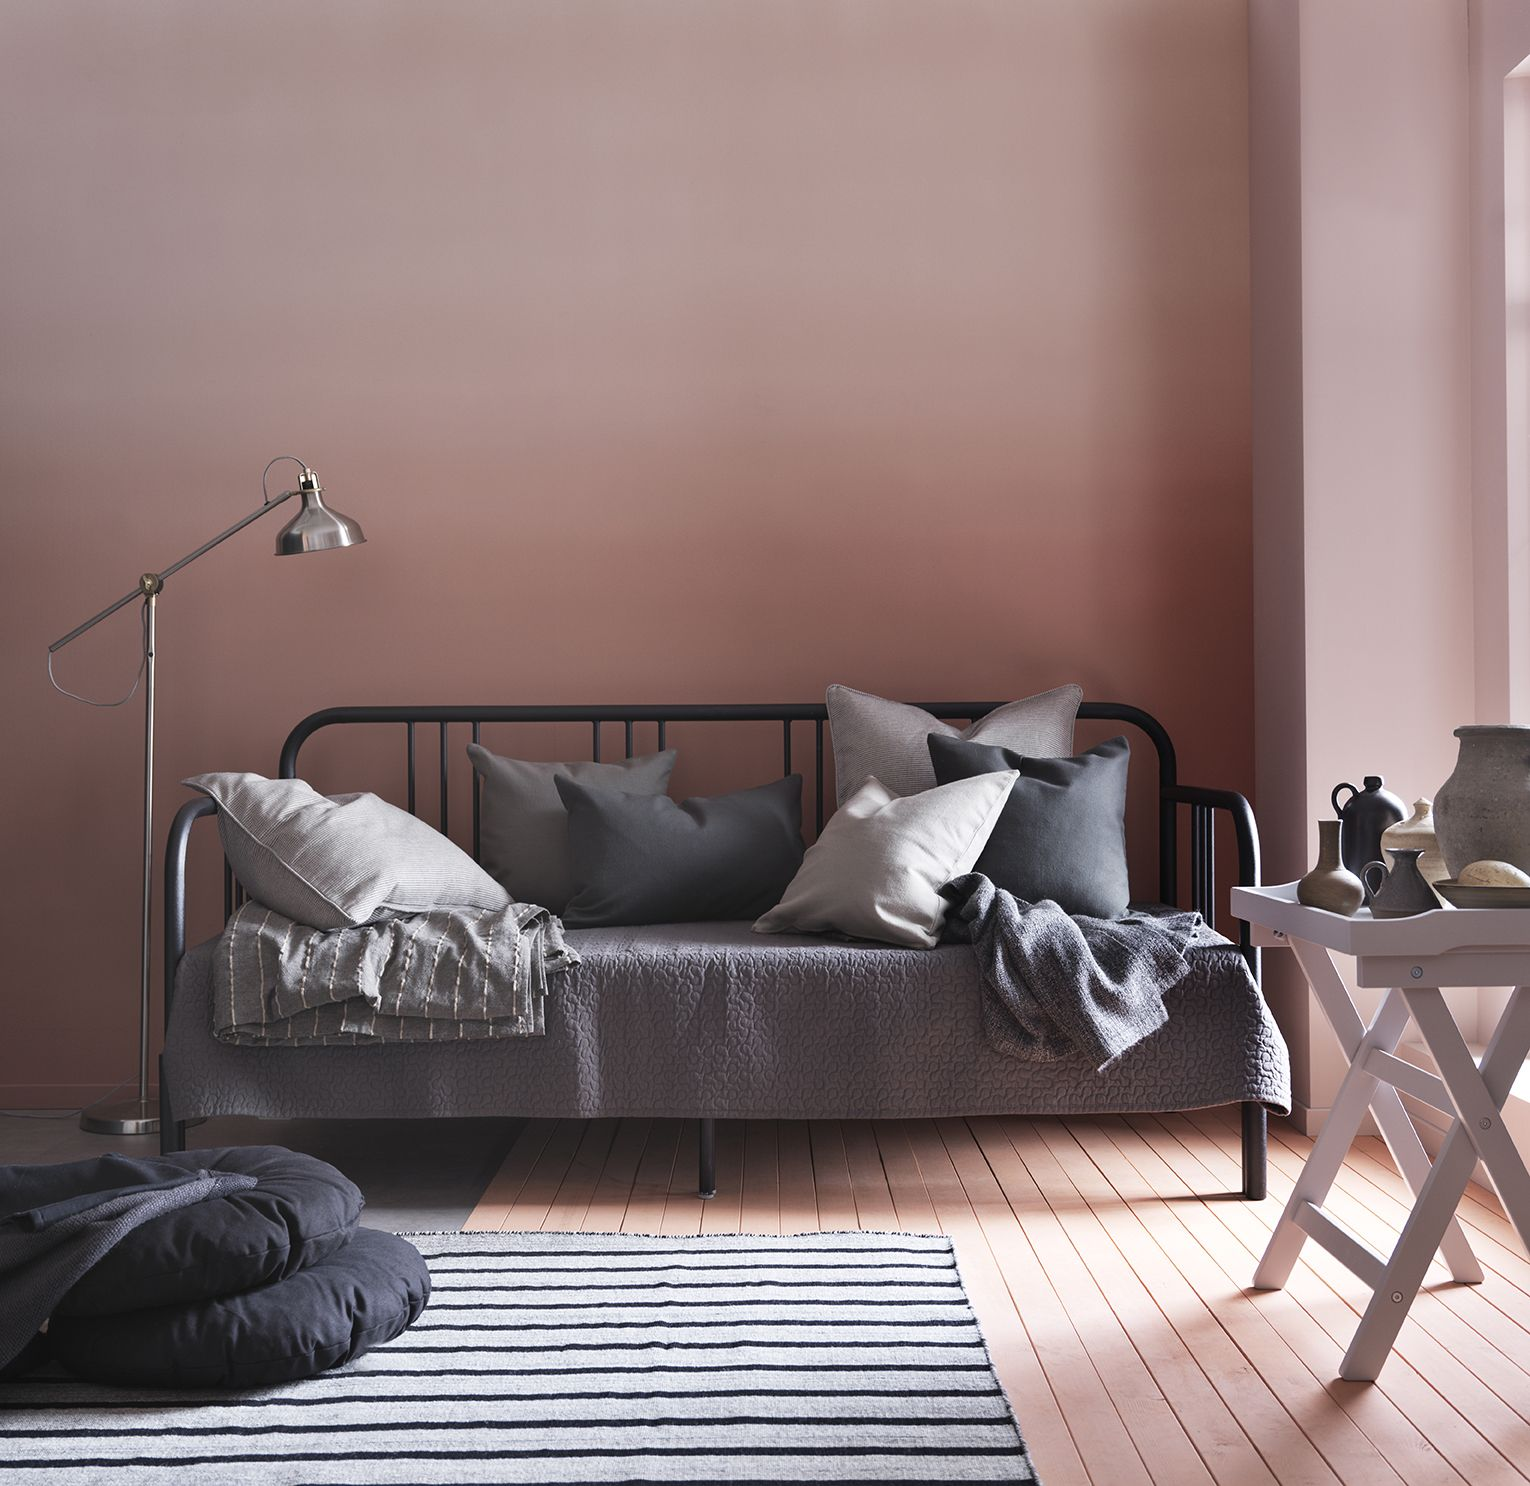 IKEA   FYRESDAL, Daybed Frame , With Some Fluffy, Soft Pillows As Back  Support, You Easily Transform This Daybed Into A Comfortable Sofa Or Chaise.